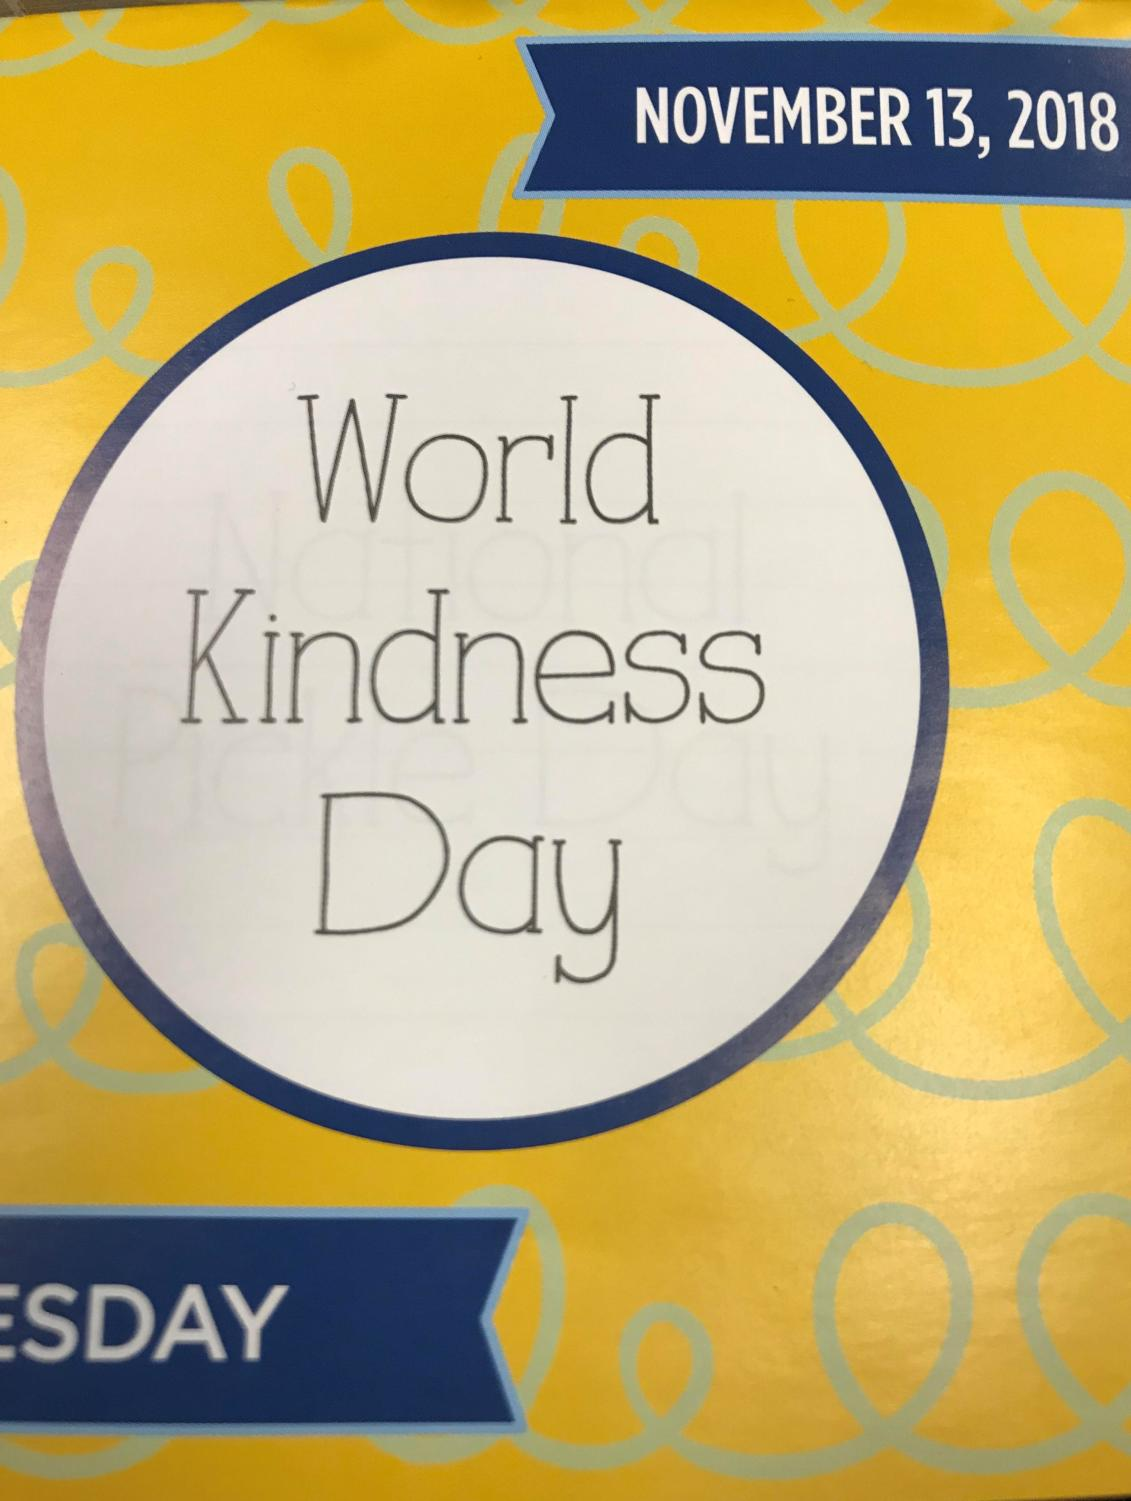 World Kindness Day was November 13th, but any day is a perfect day to start small acts of kindness.